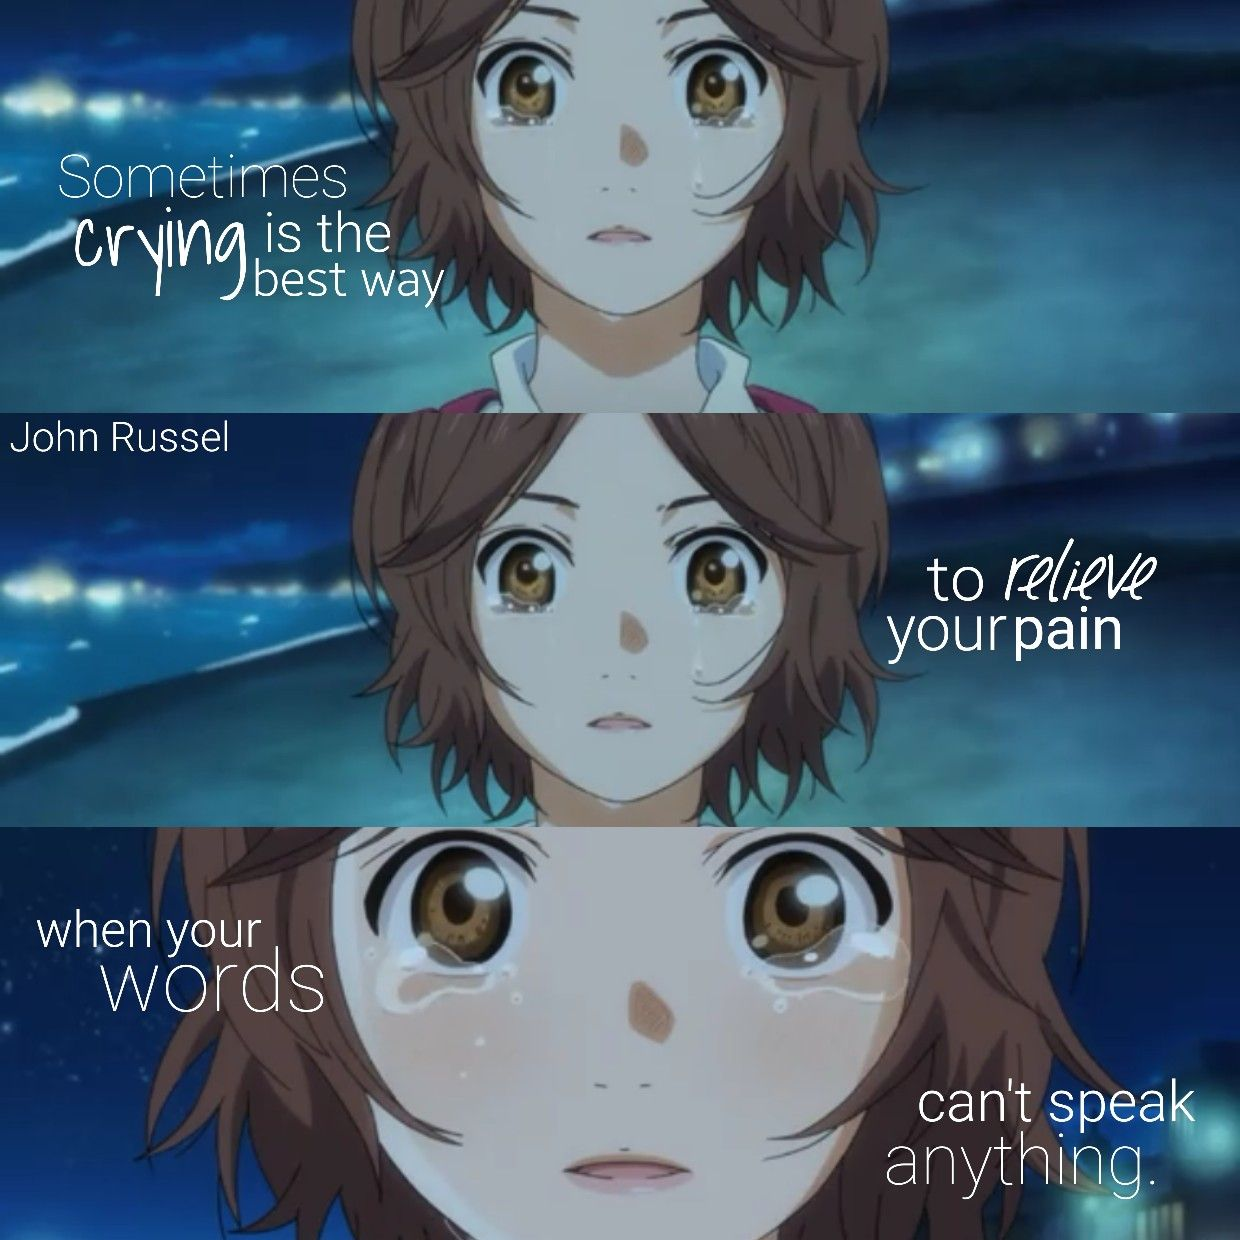 Your lie in april  Girl power quotes, Anime quotes inspirational